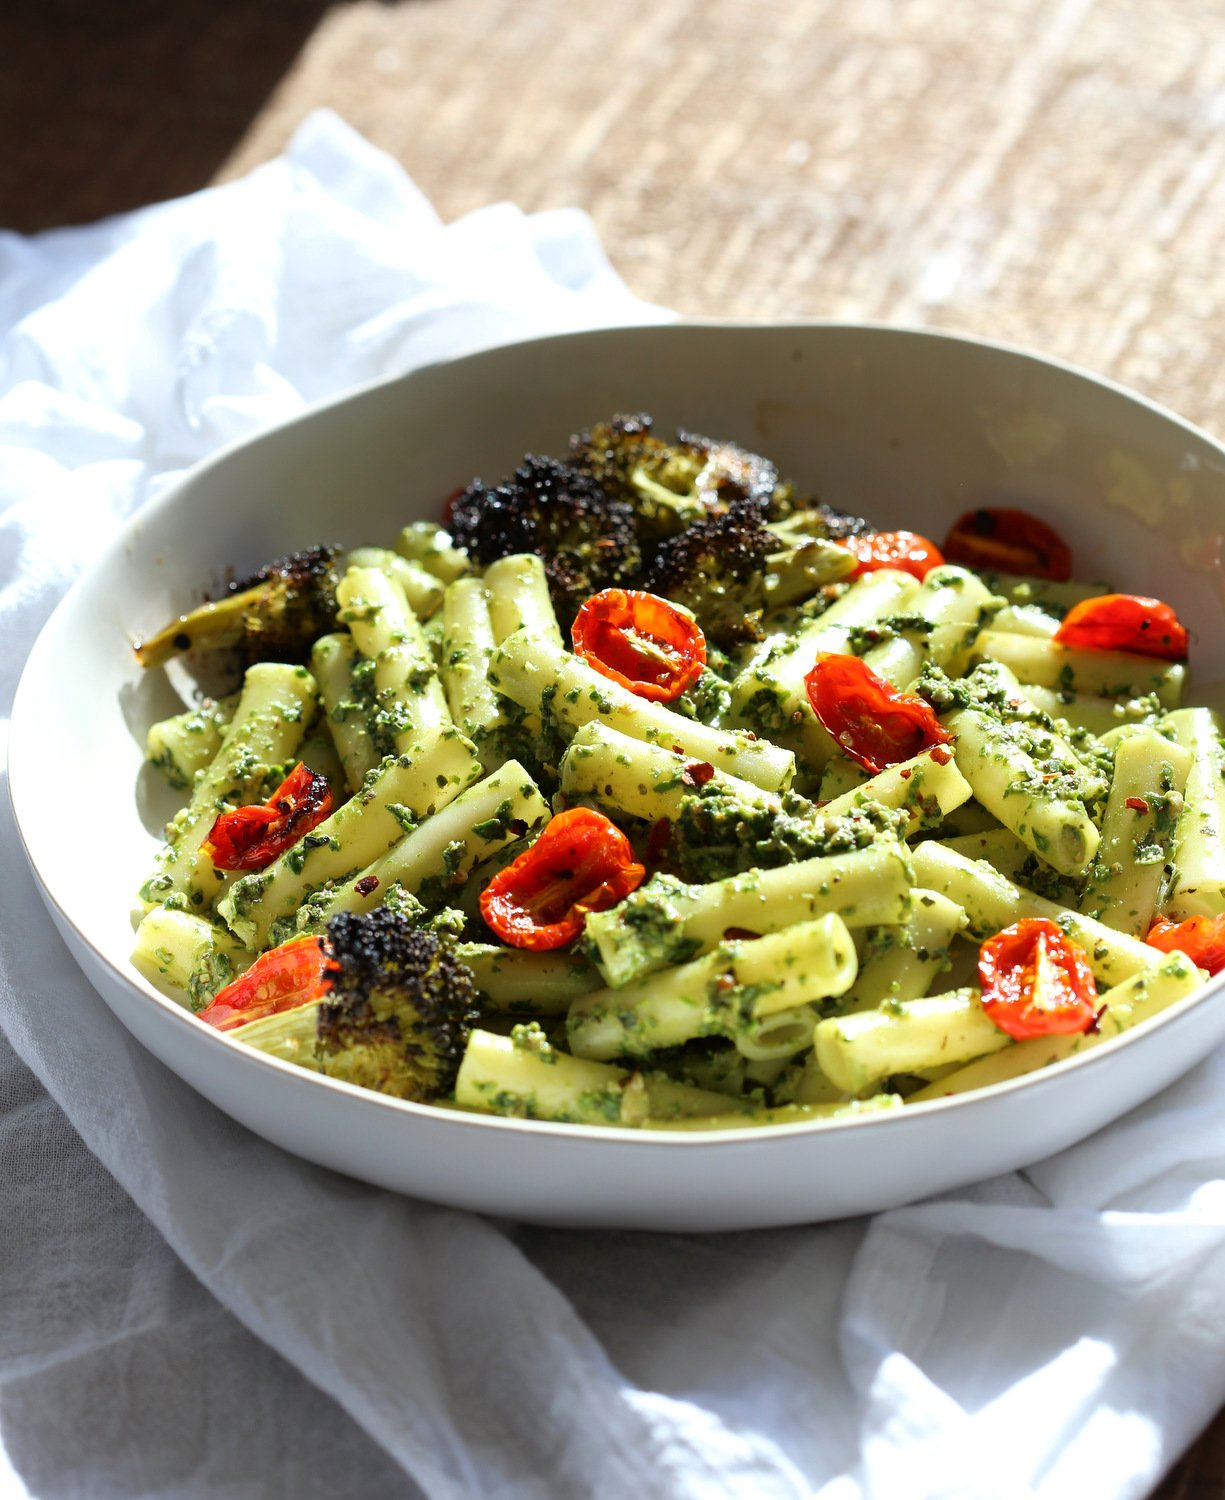 Large While Bowl with Vegan Pesto Pasta with Ziti, roasted cherry tomatoes and Charred broccoli on wood table